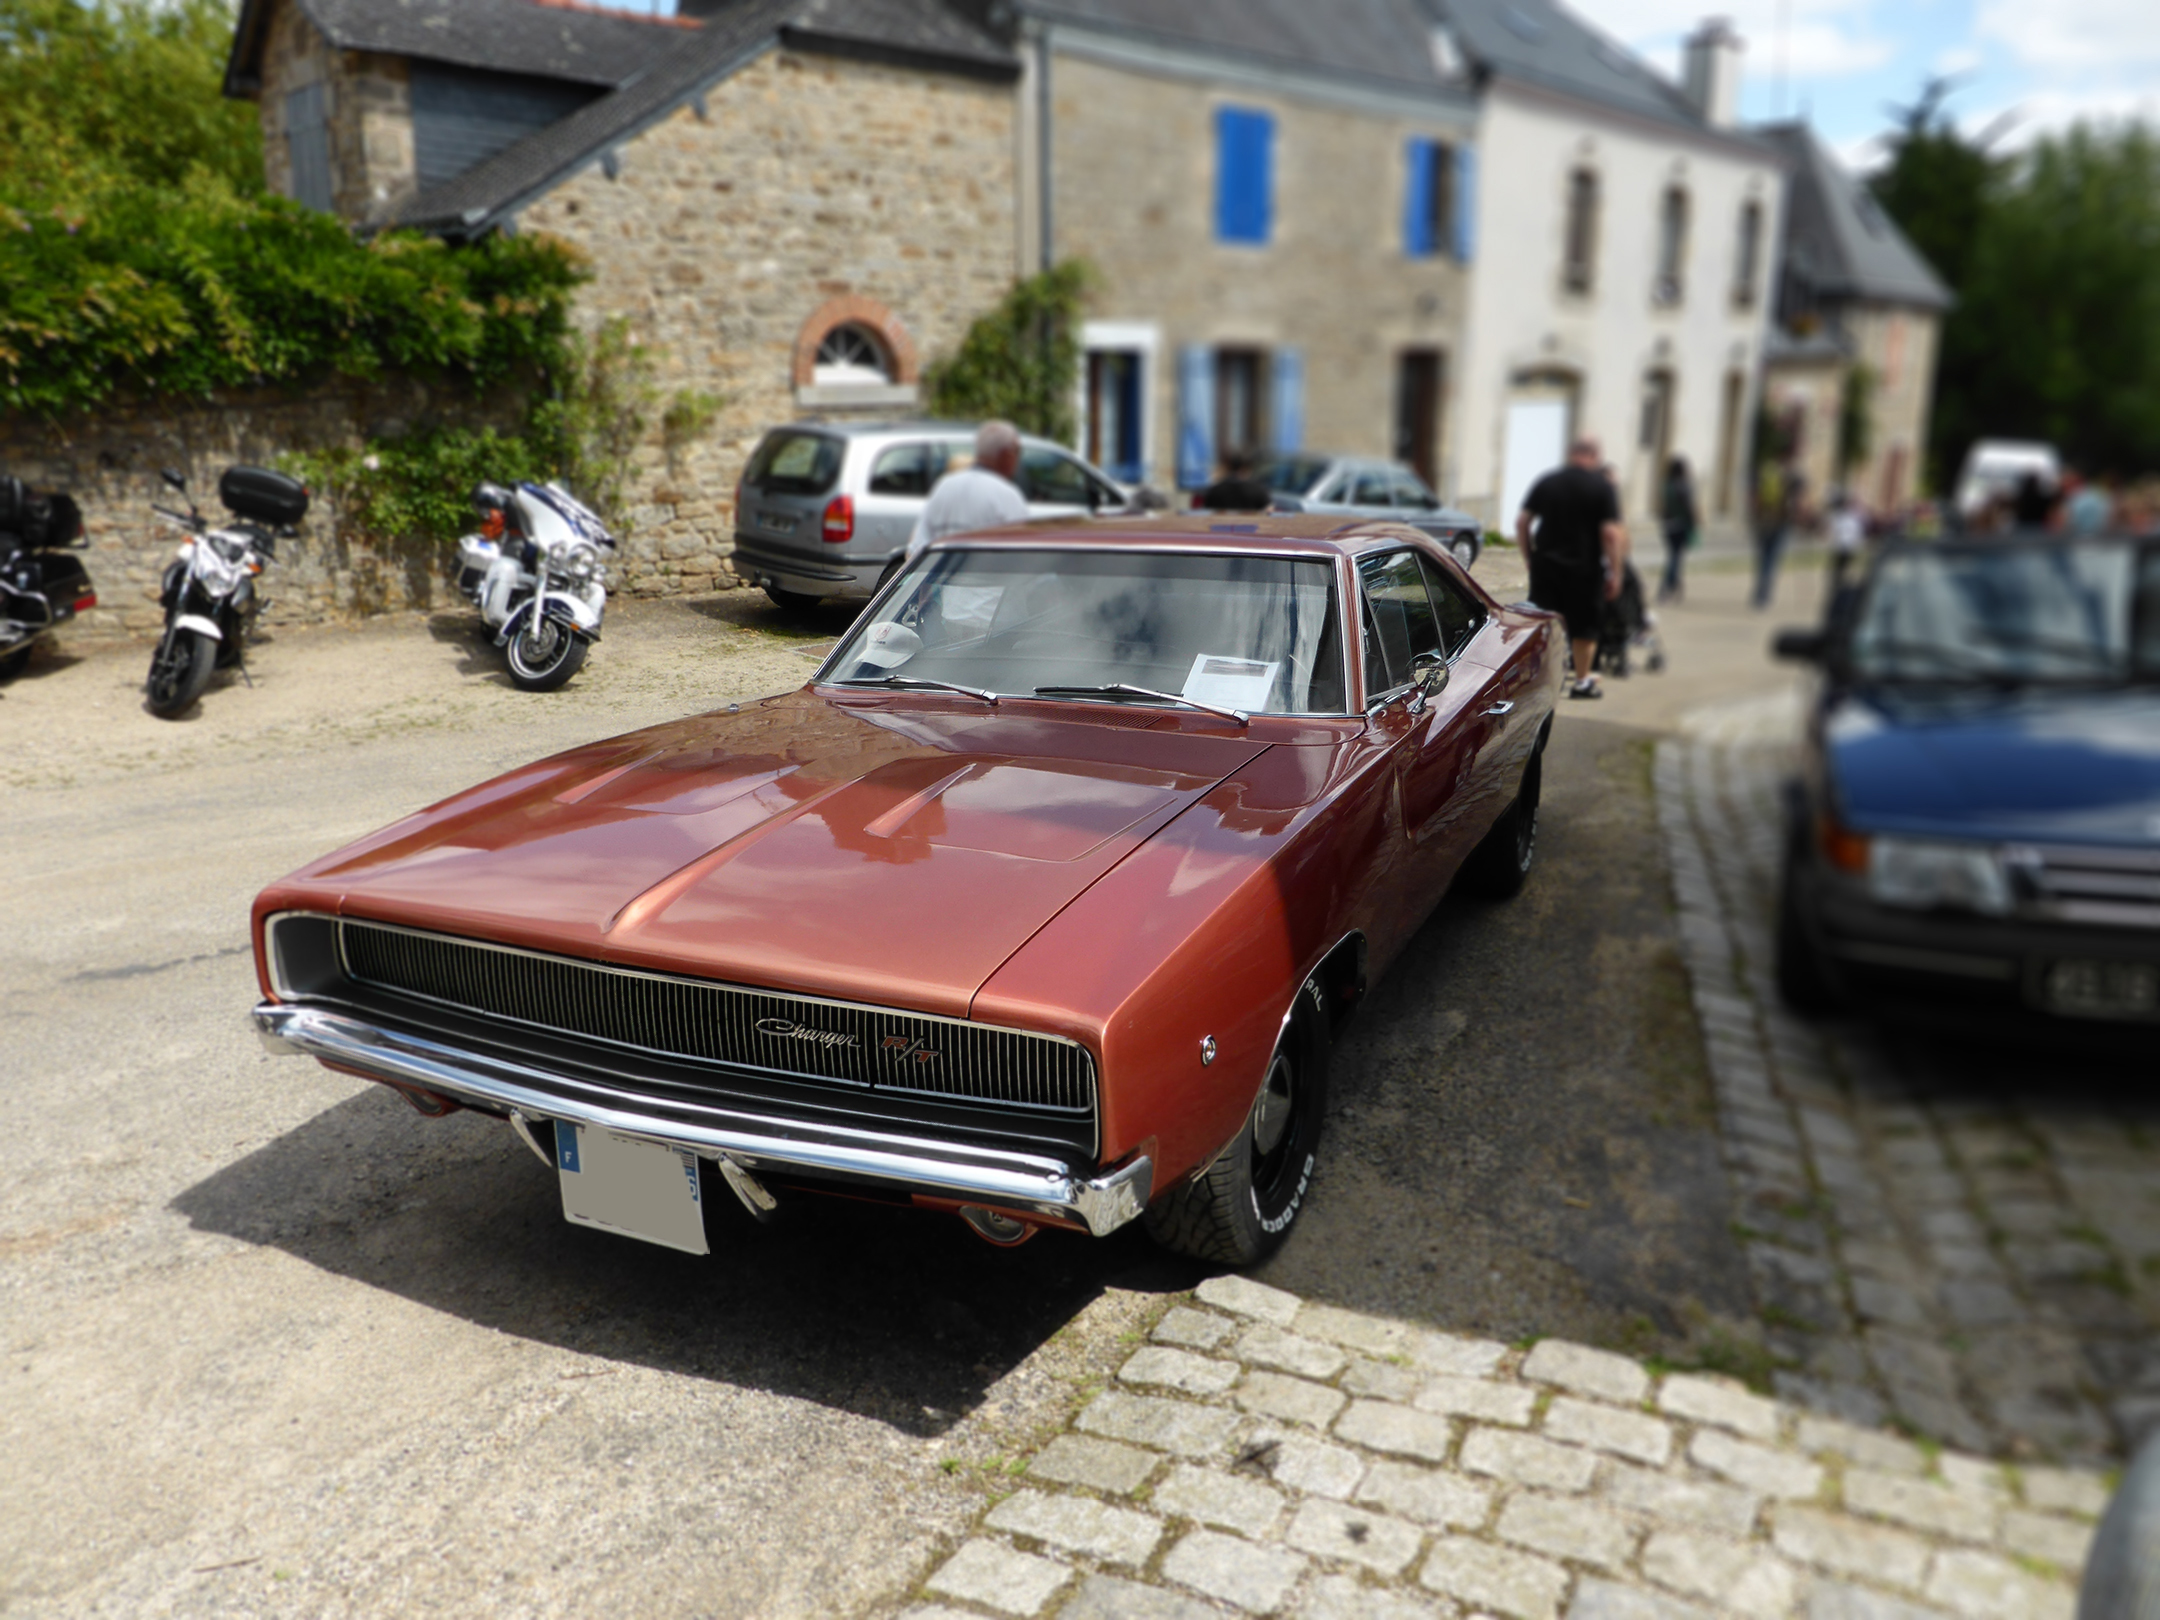 Dodge Charger R/T - 1968 - front - US Cars and Bikes 2017 - Photo by ELJ